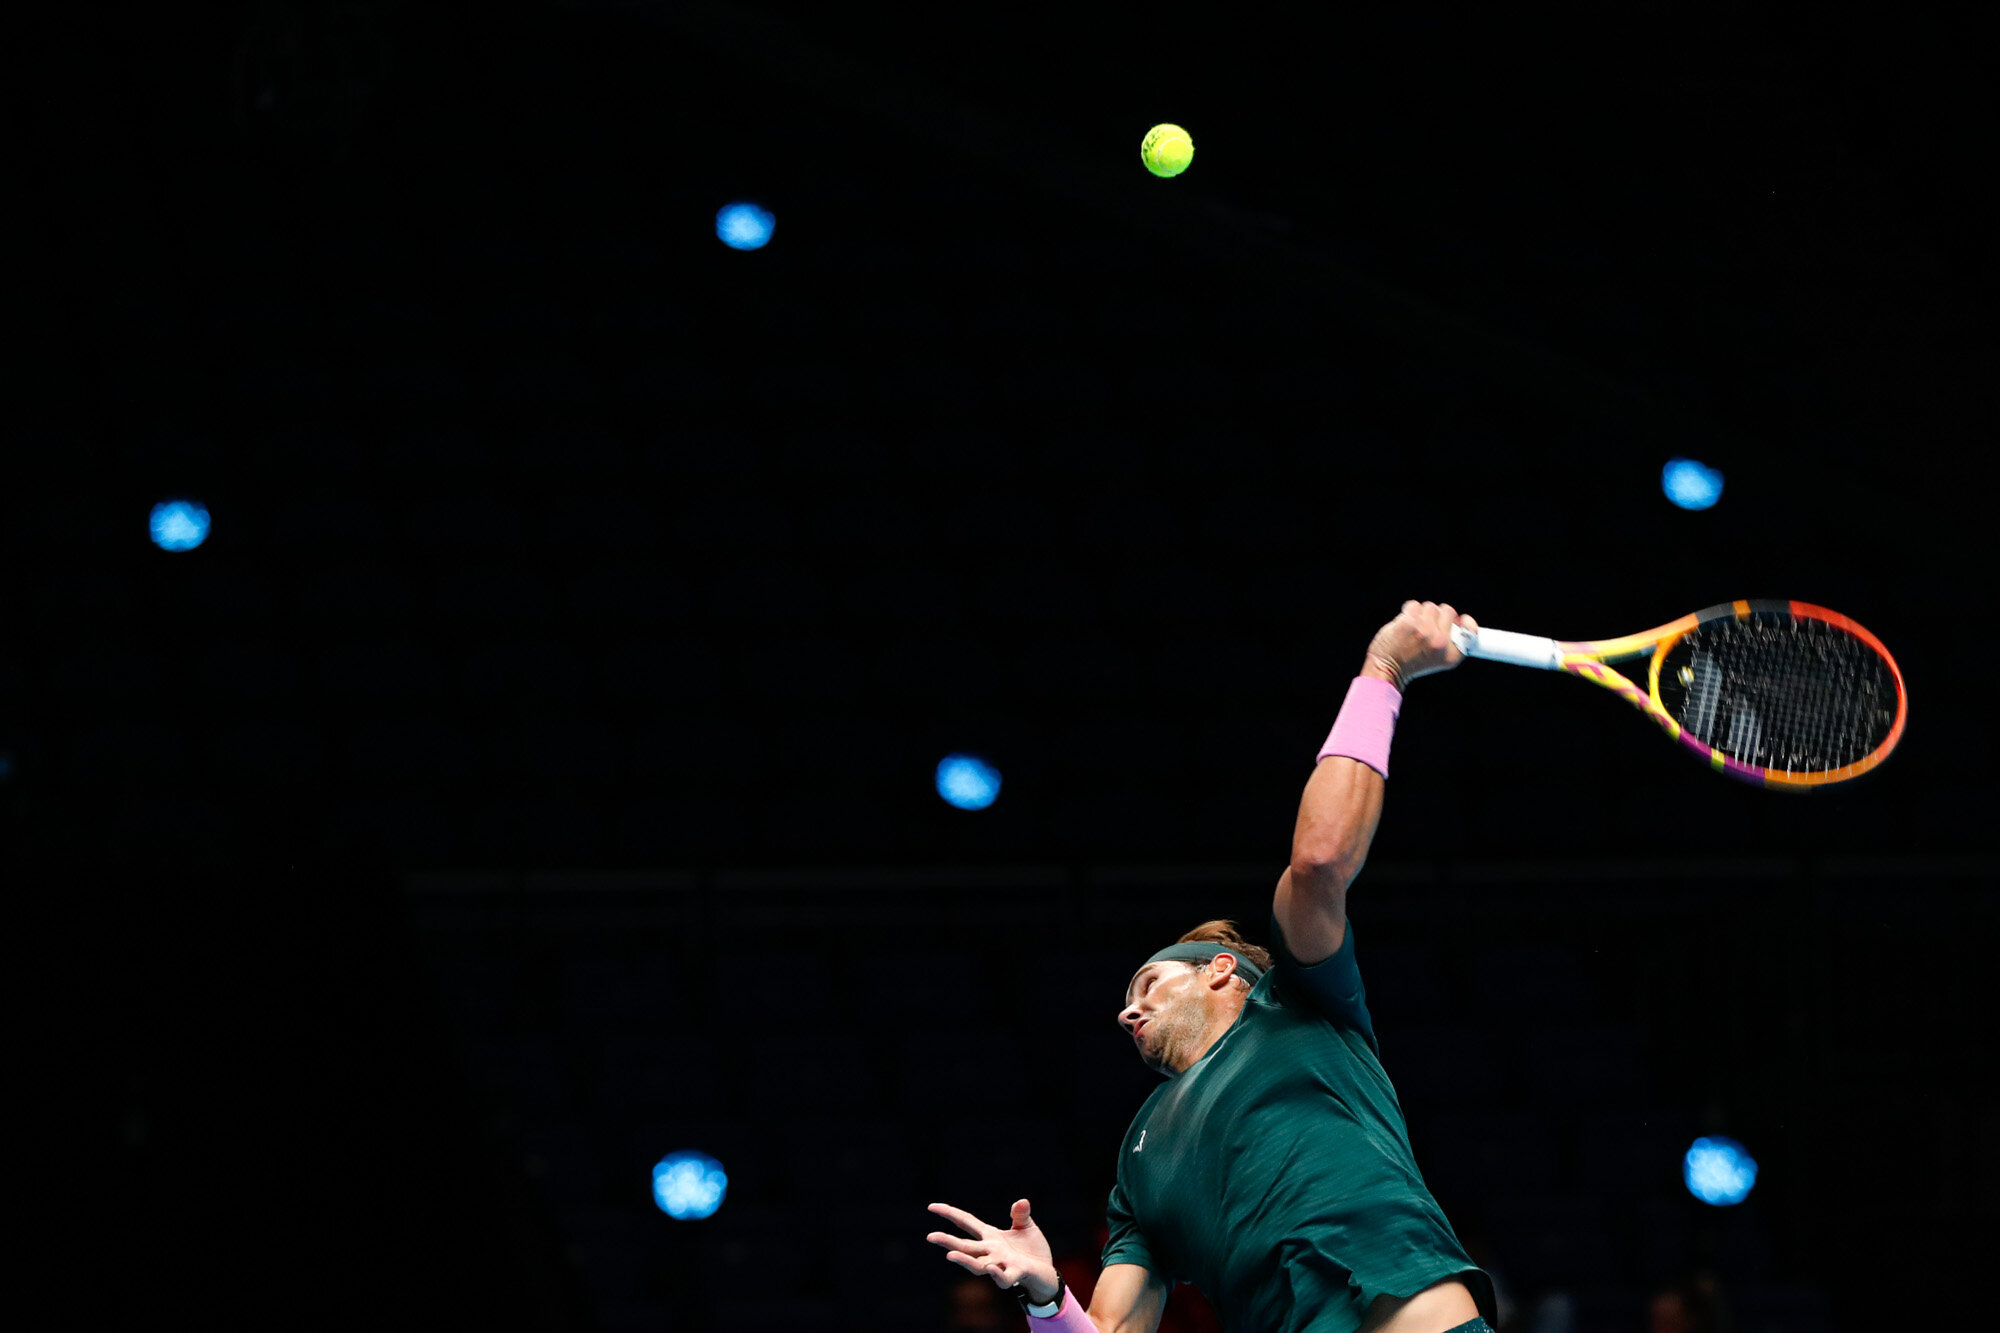 Rafael Nadal of Spain serves to Stefanos Tsitsipas of Greece during their tennis match at the ATP World Finals tennis tournament at the O2 arena in London on Nov. 19, 2020. (AP Photo/Frank Augstein)